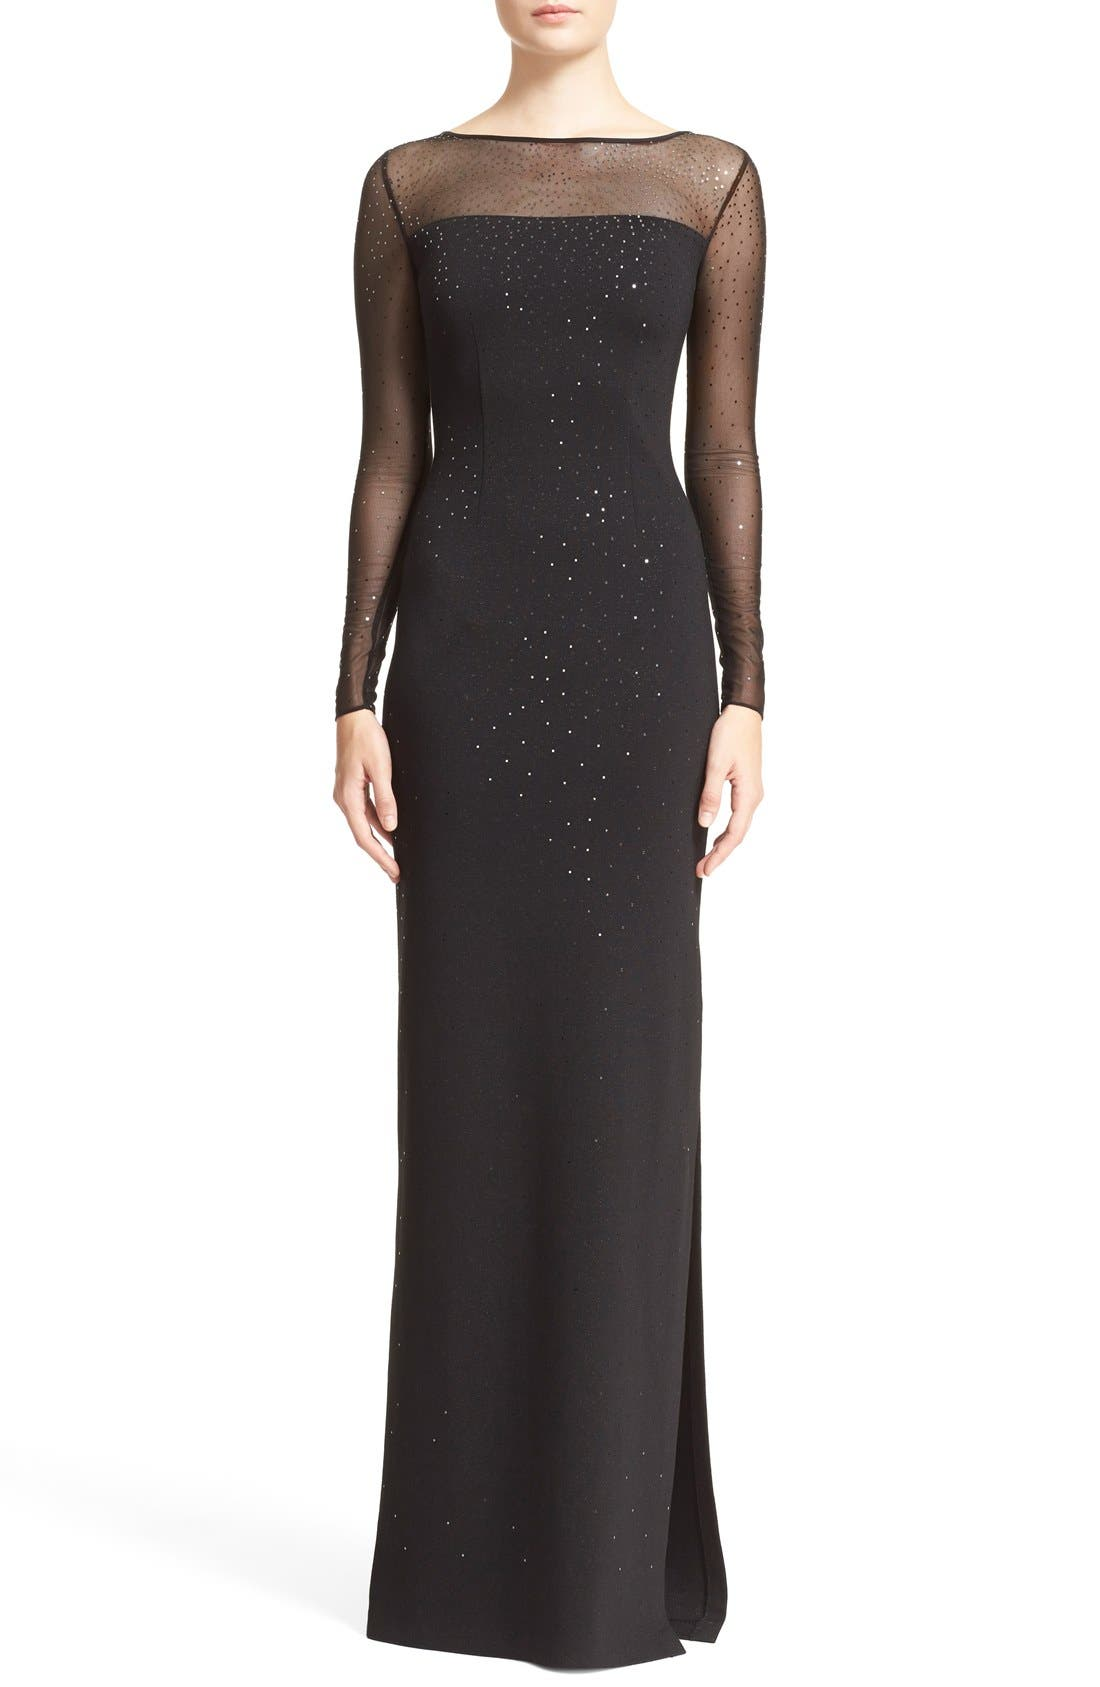 ST. JOHN COLLECTION Embellished Shimmer Milano Knit Gown, Main, color, 001